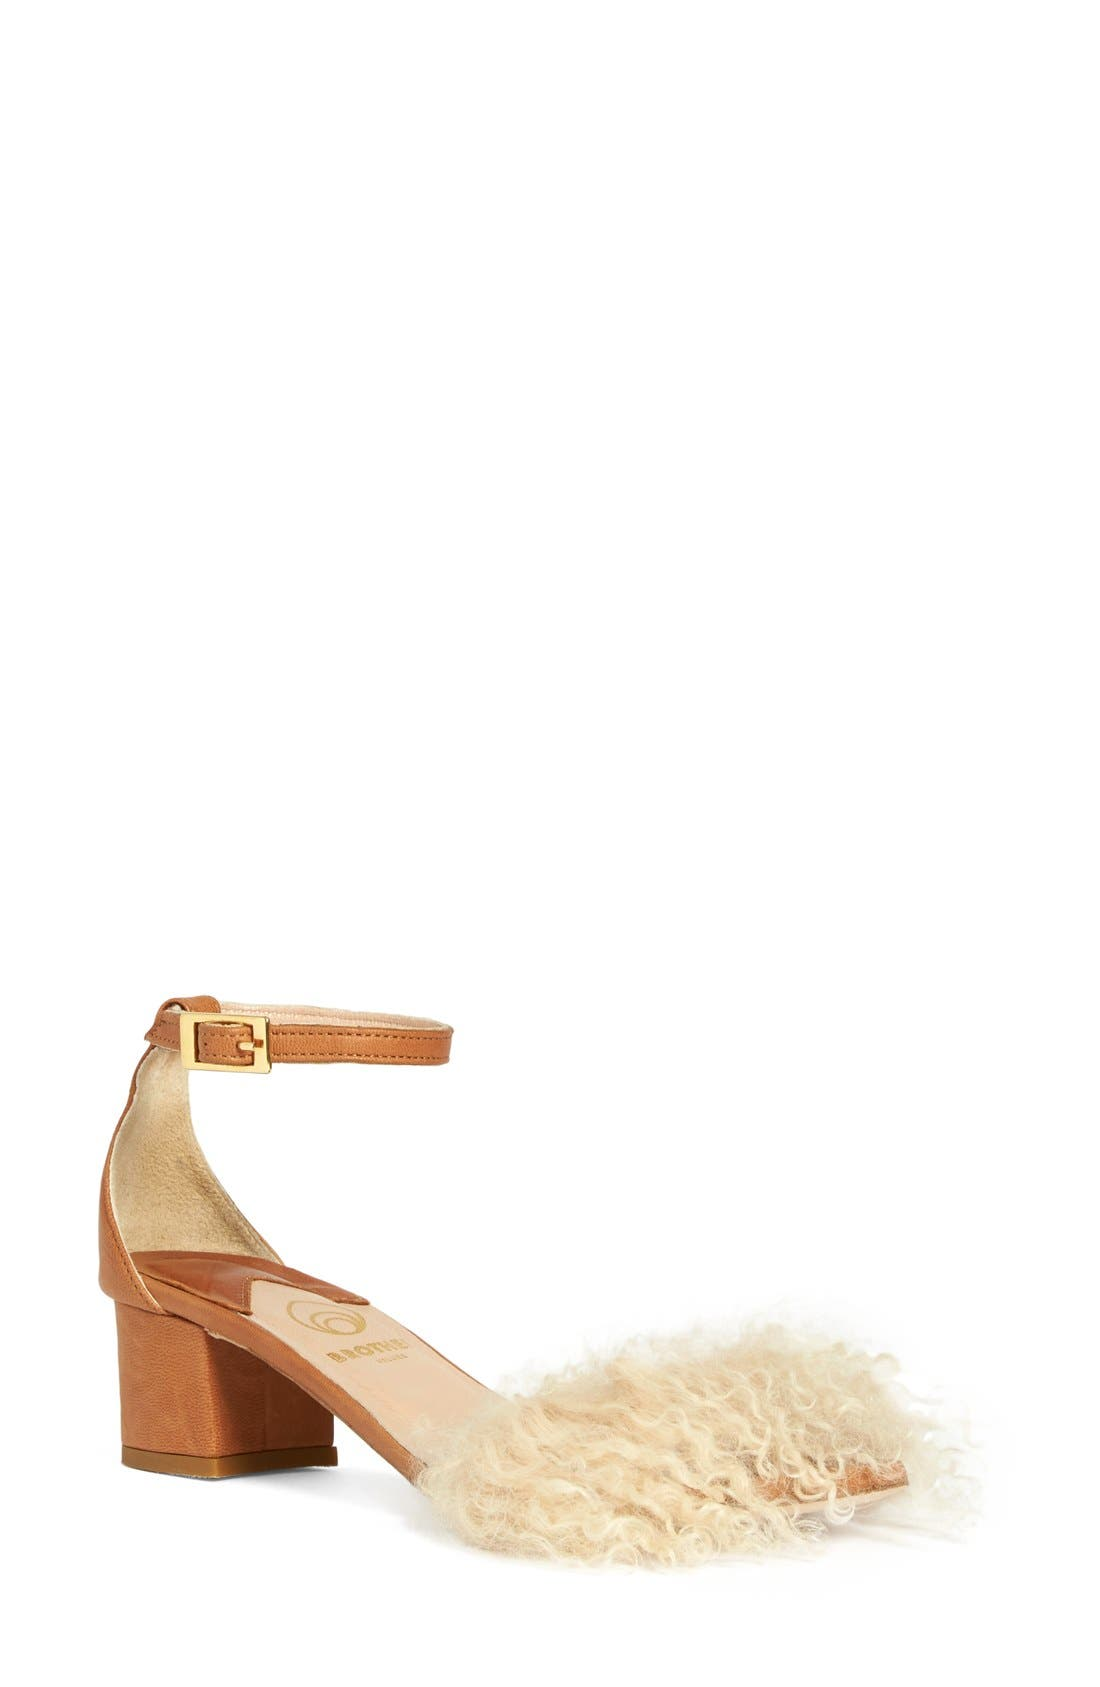 Tufted Dhara Genuine Shearling Ankle Strap Sandal,                             Main thumbnail 1, color,                             270